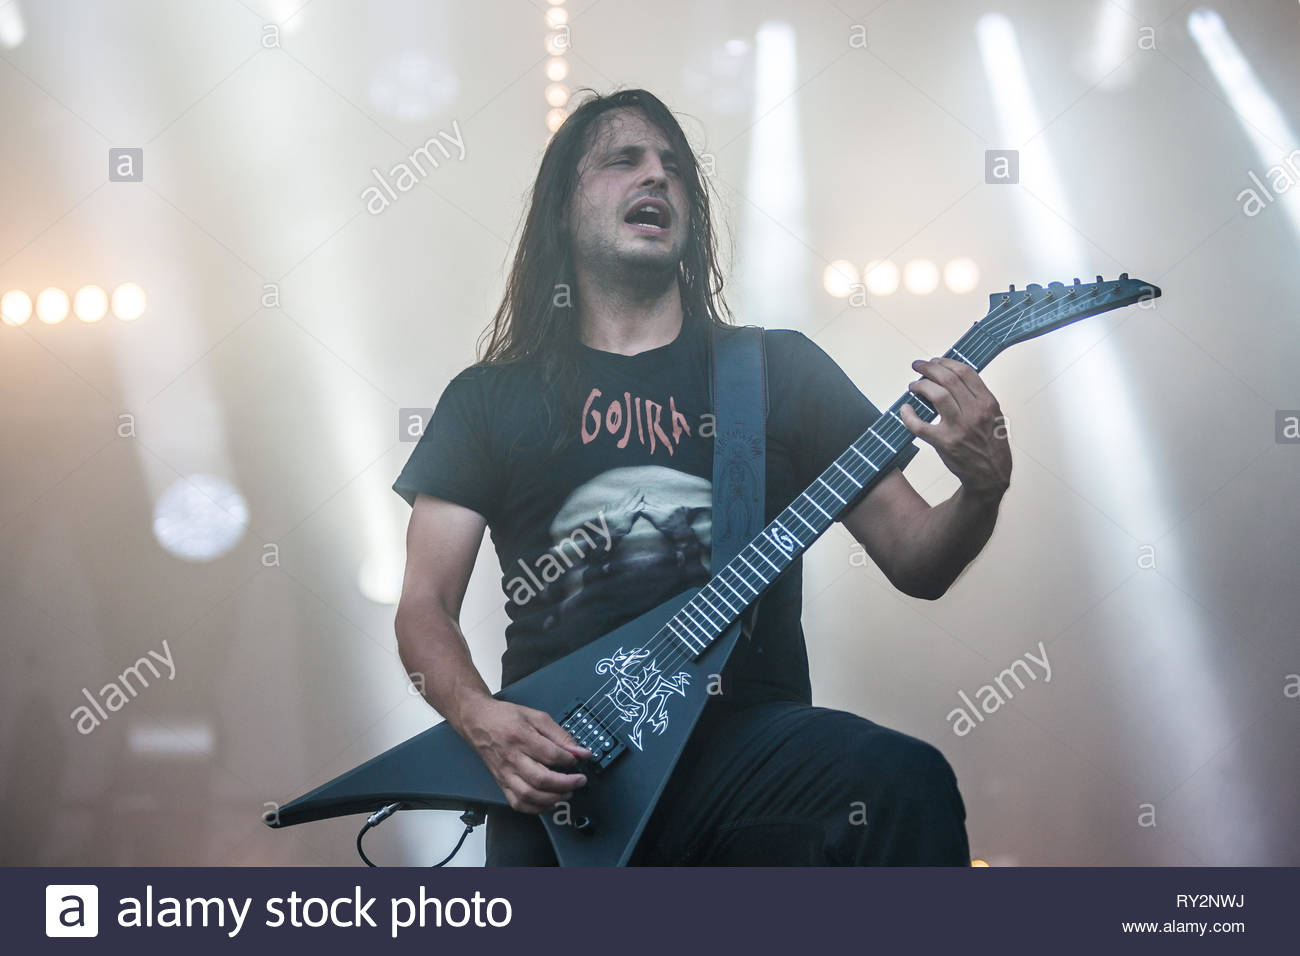 GOJIRA performing live, 10 juillet 2015 Stock Photo